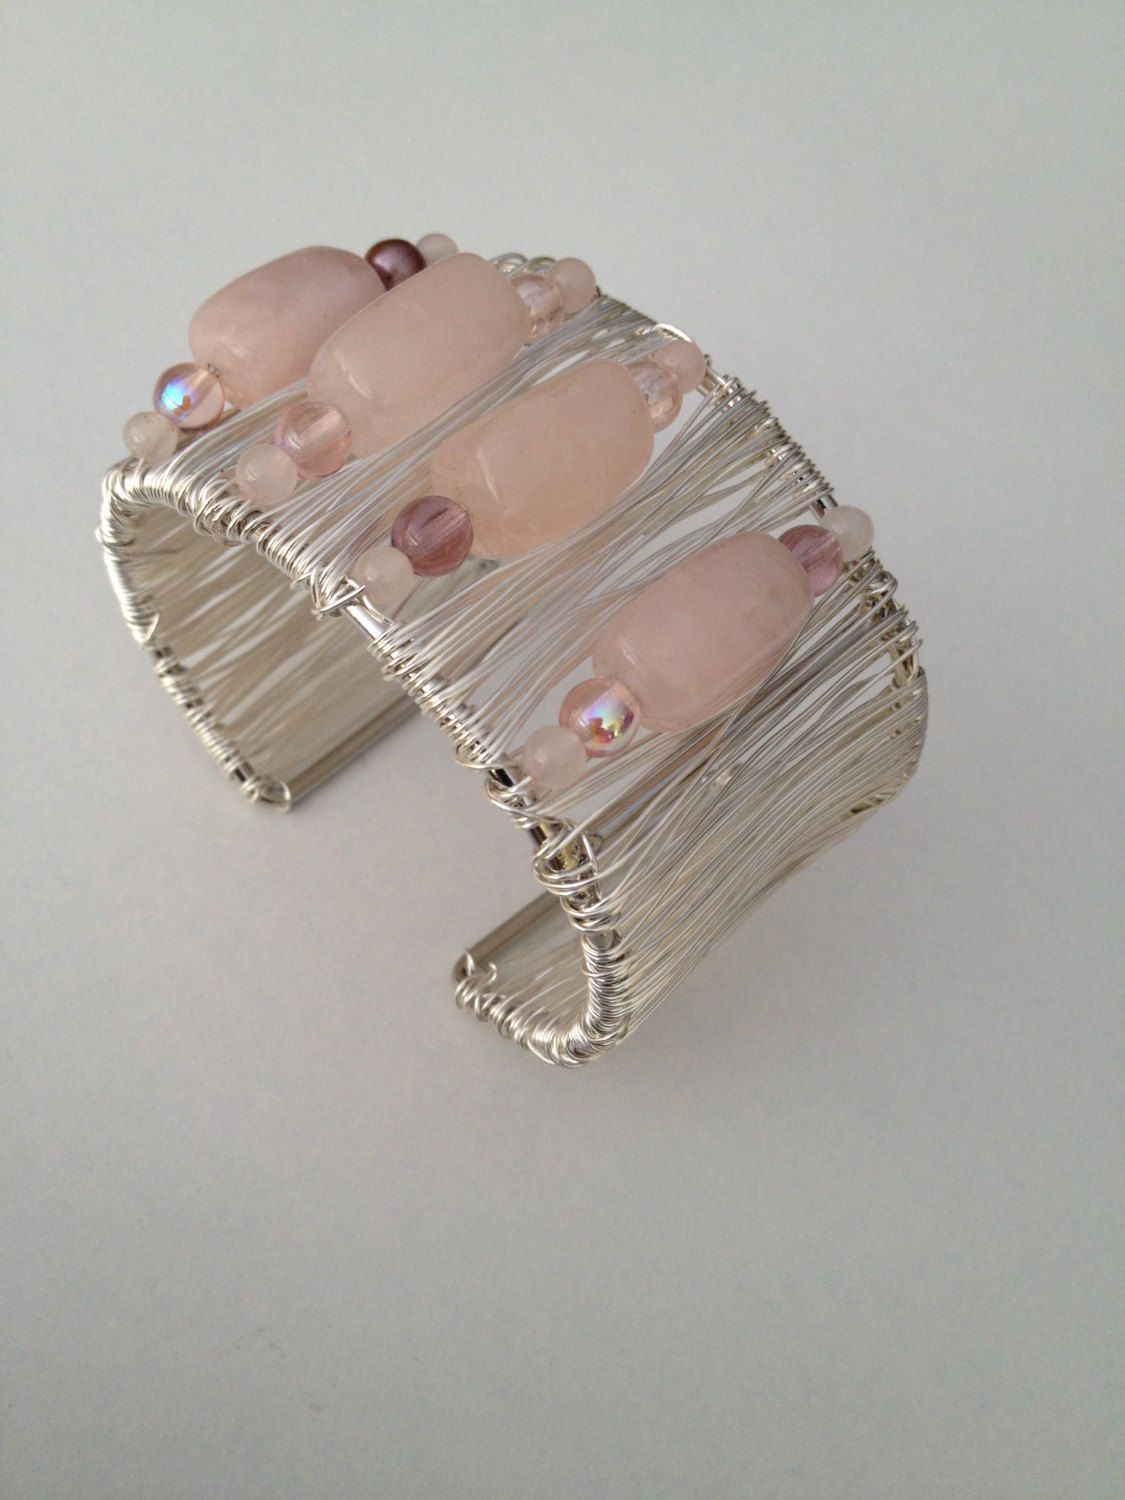 "Handmade Silver Wire wrapped Vintage style Cuff Bracelet. This is a chic, feminine cuff bracelet that will soon become one of your favorite pieces of jewelry. The Silver color artistic wire is non tarnish and hand wrapped onto a cuff form. The large oval shape beads are a very soft pretty pink opal look stone. The beads are wrapped across the front of the cuff bracelet onto the bracelet. Cuff measures approximately 2.5"" wide and adjusts to any wrist. ..."